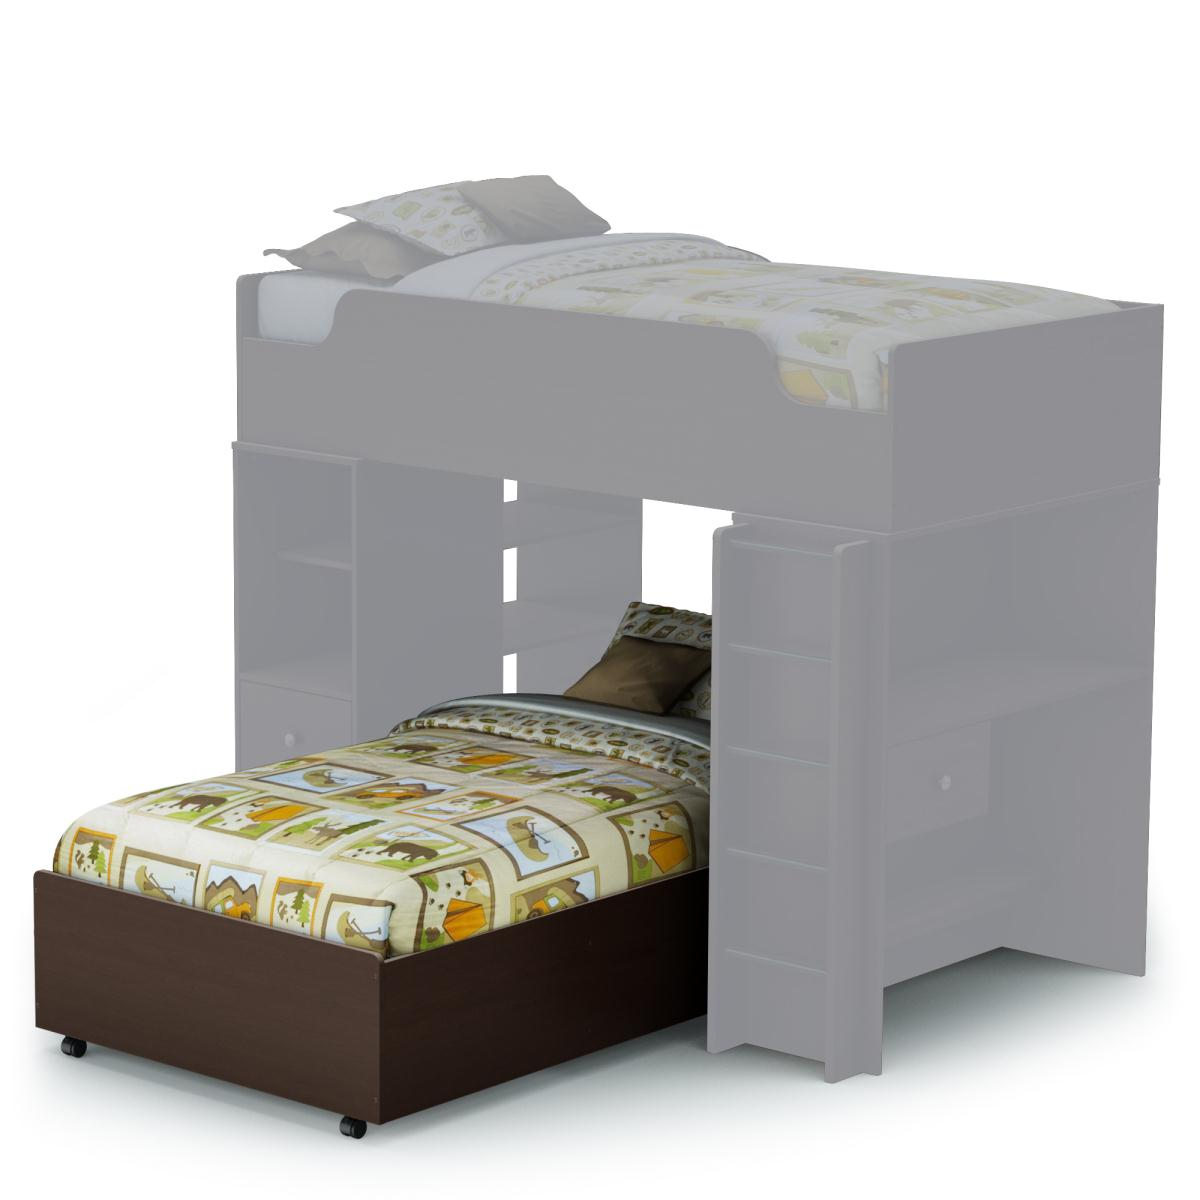 South Shore Logik Twin Bed on Casters - Chocolate